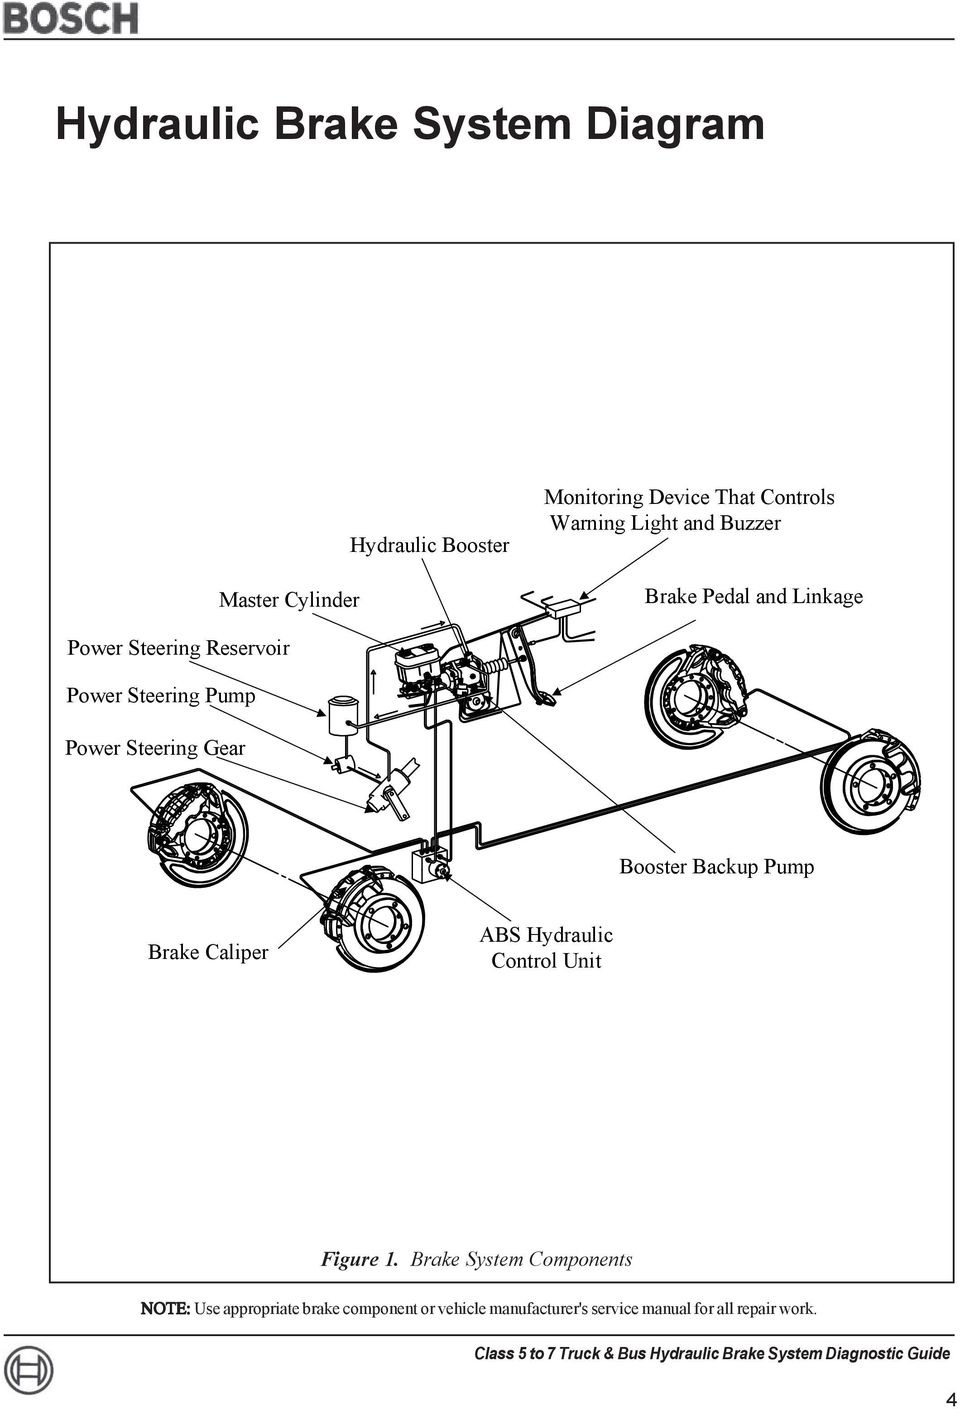 Class 5 To 7 Truck And Bus Hydraulic Brake System Pdf Mini Cooper Brakes Diagram Steering Reservoir Power Pump Gear Booster Backup